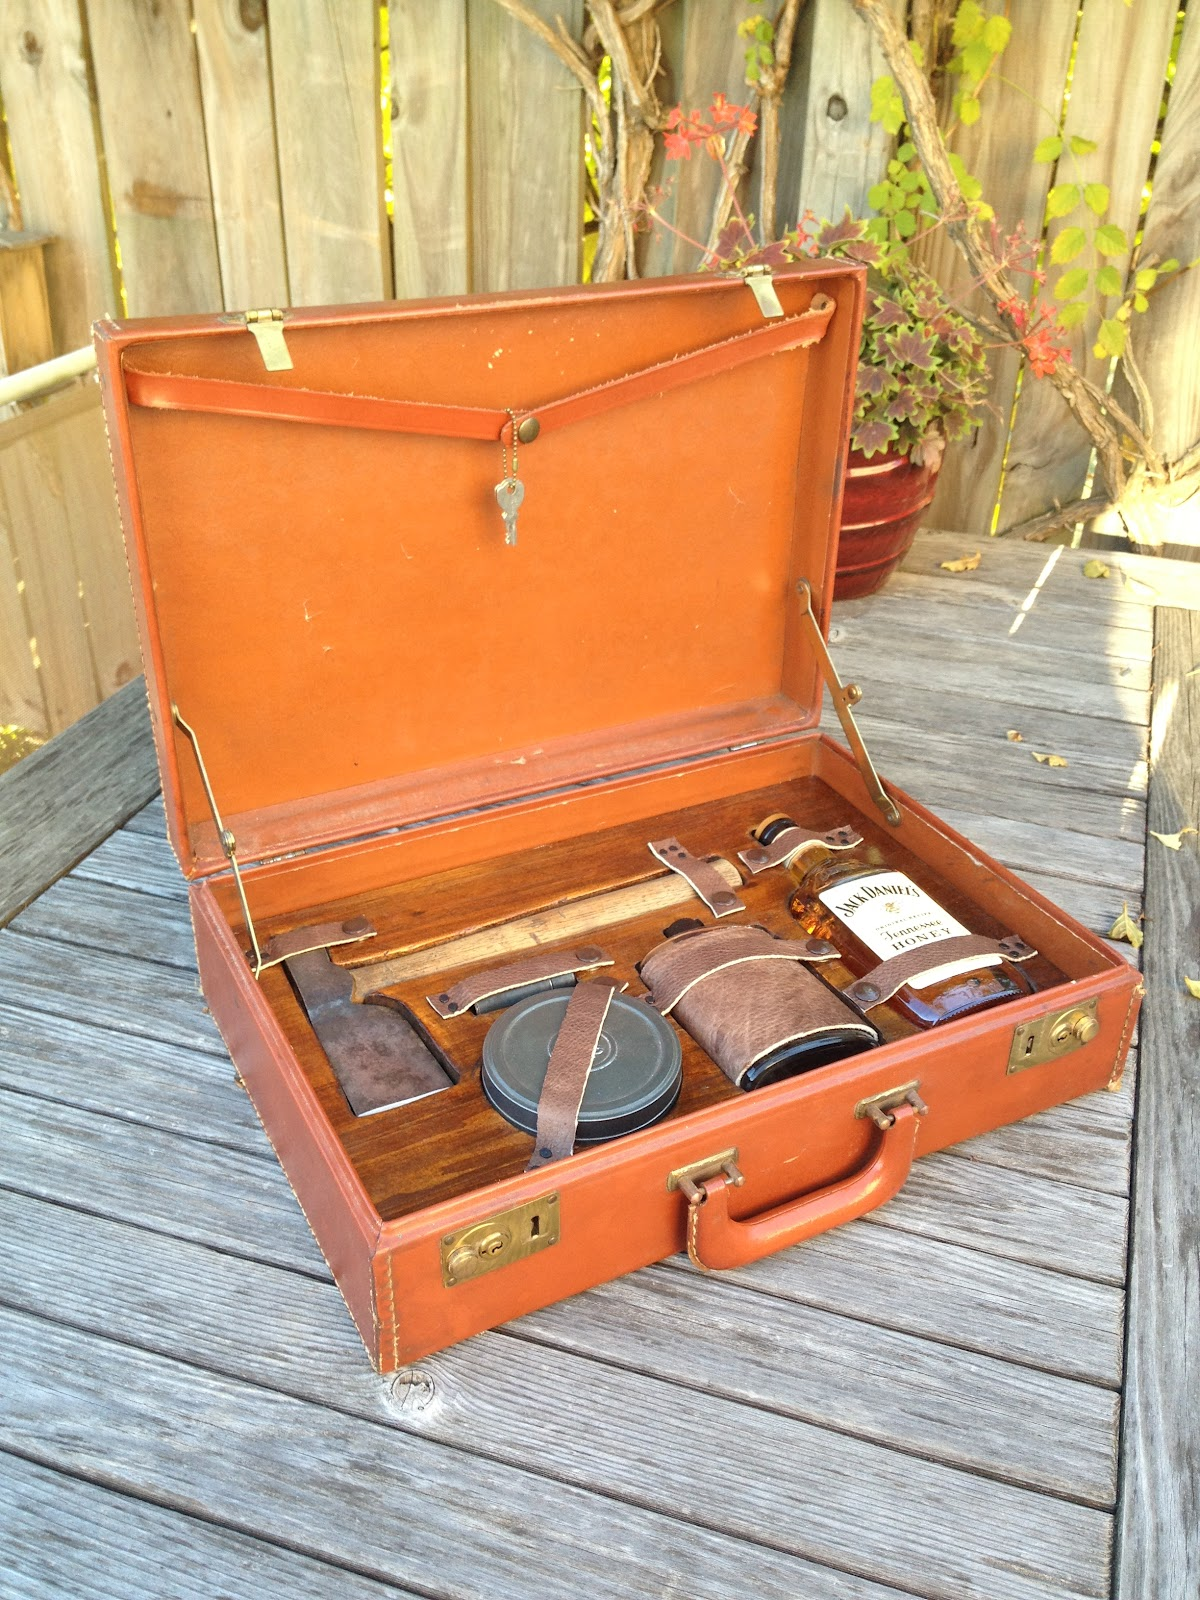 Build Wooden Briefcase Kit Diy Roubo Woodworking Bench Plans Wiry45oha